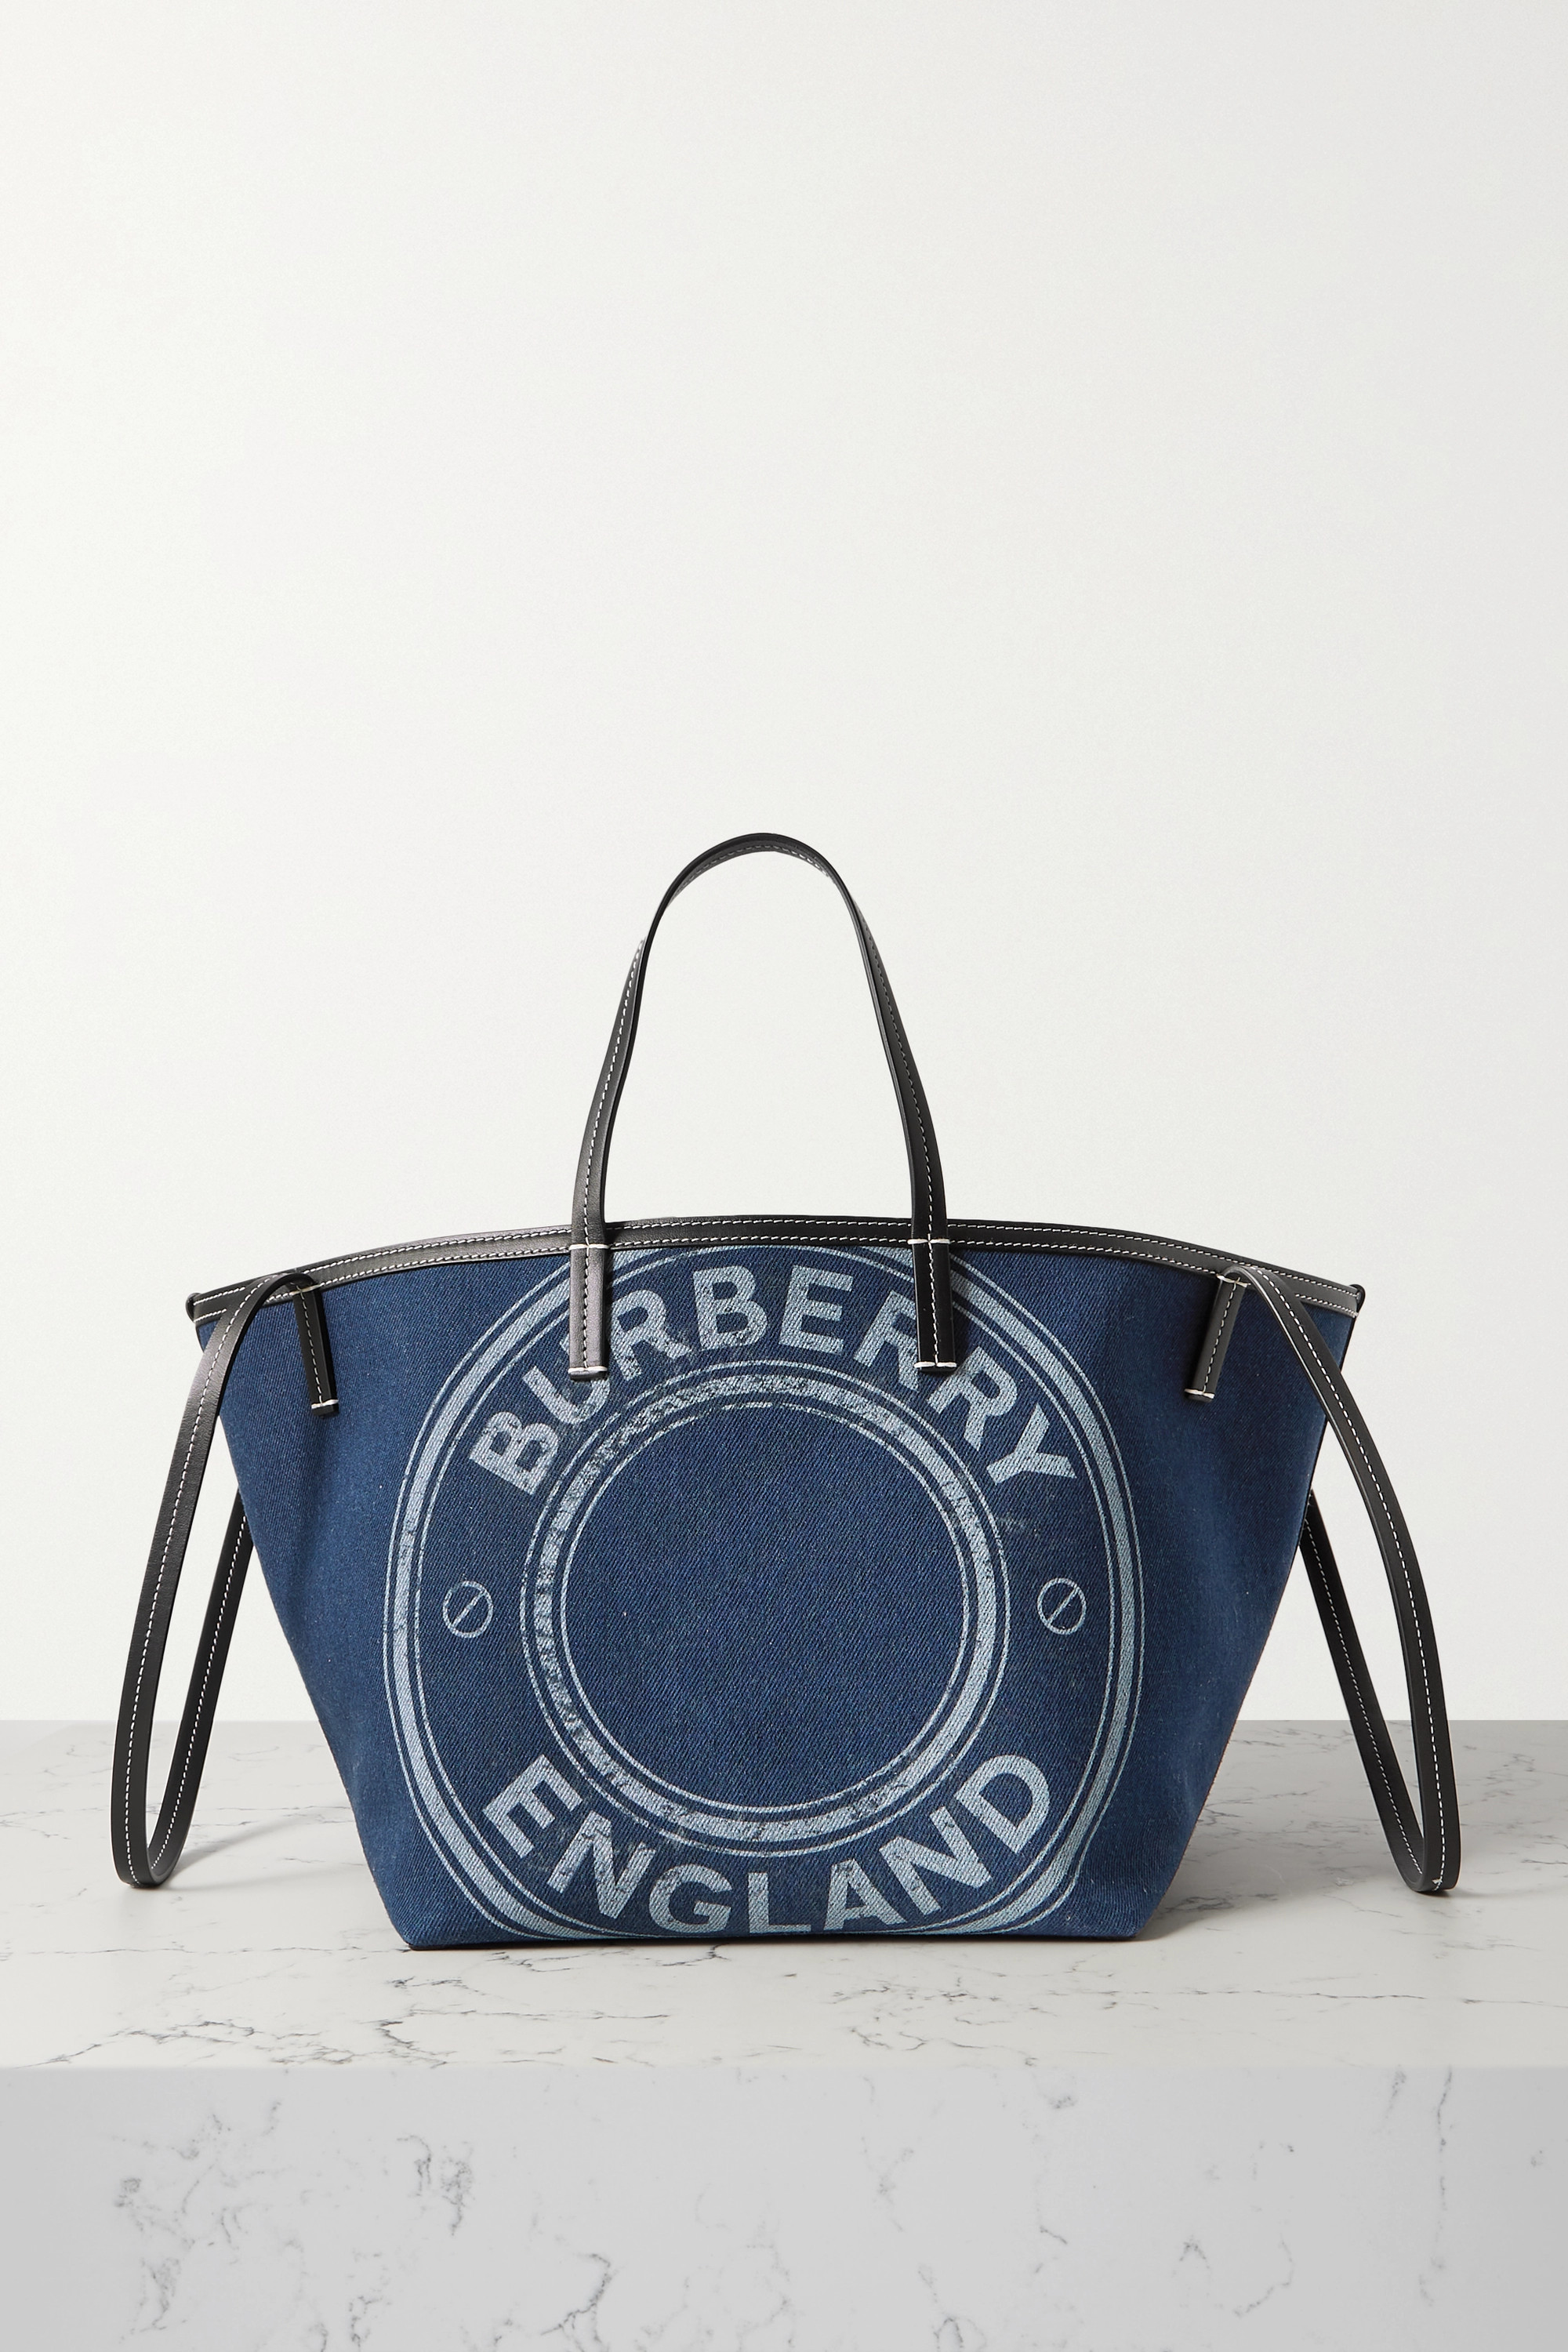 Burberry Beach mini leather-trimmed printed denim tote